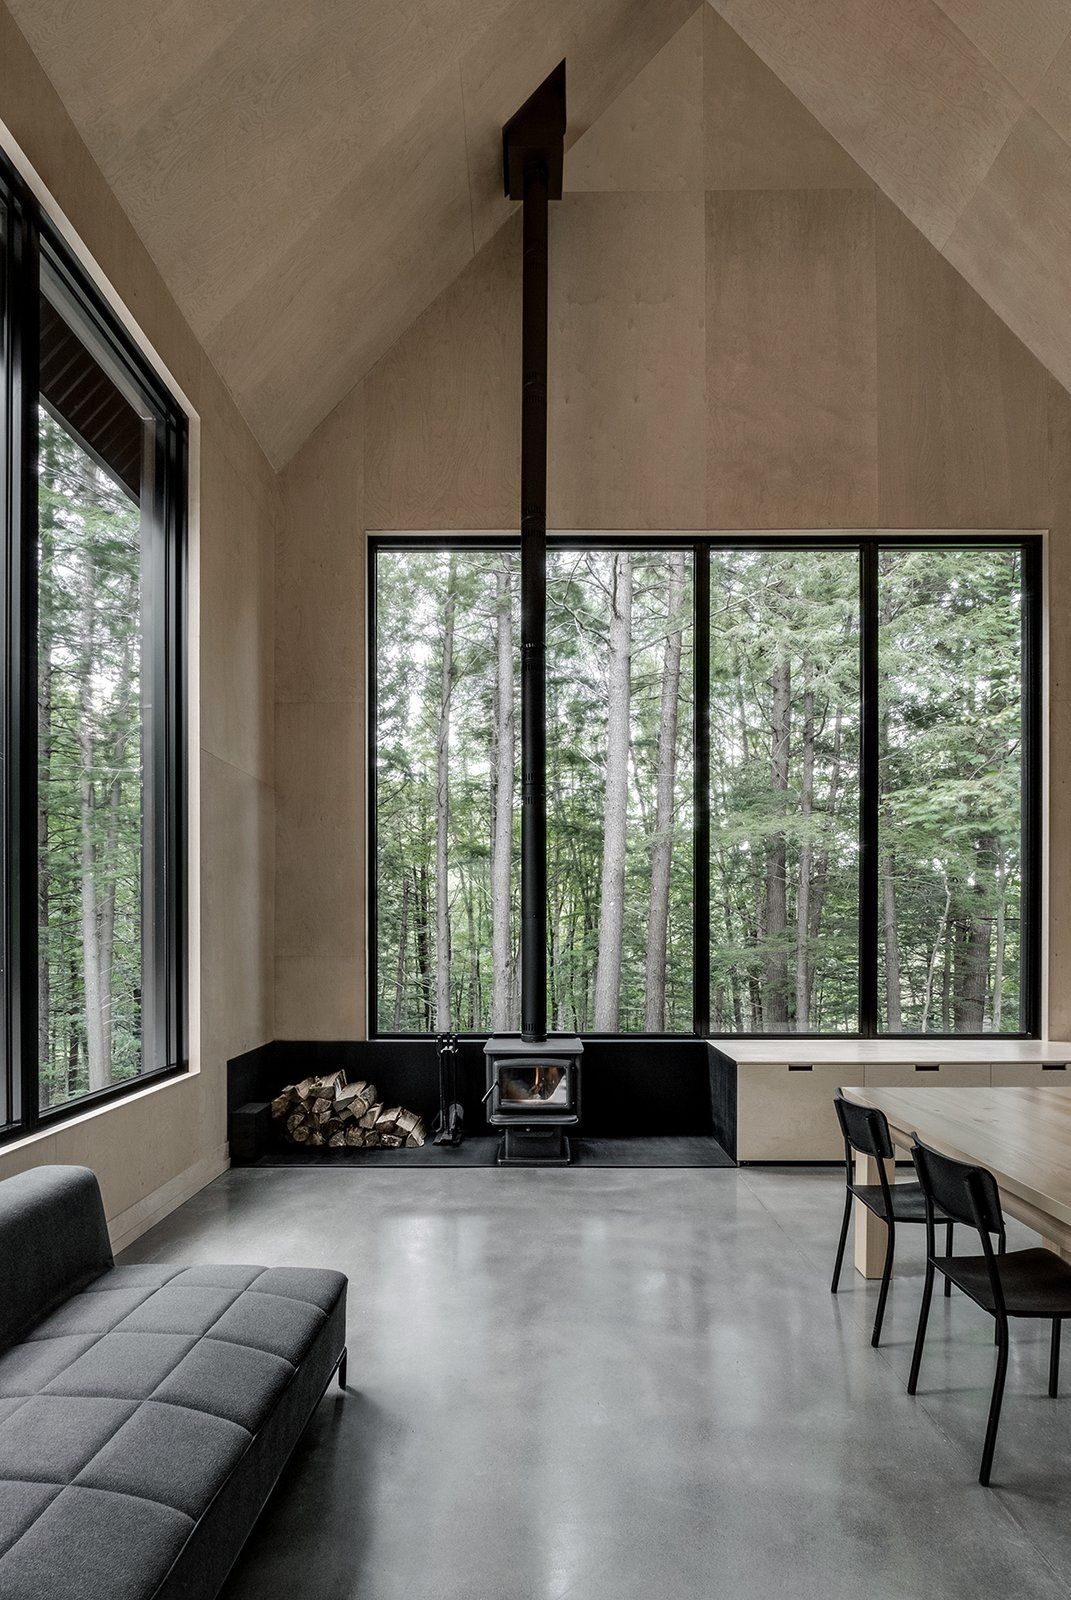 Living Room, Sofa, Wood Burning Fireplace, Concrete Floor, Storage, Chair, and Table  Photo 8 of 17 in A Lofty Nature Retreat in Quebec Inspired by Nordic Architecture